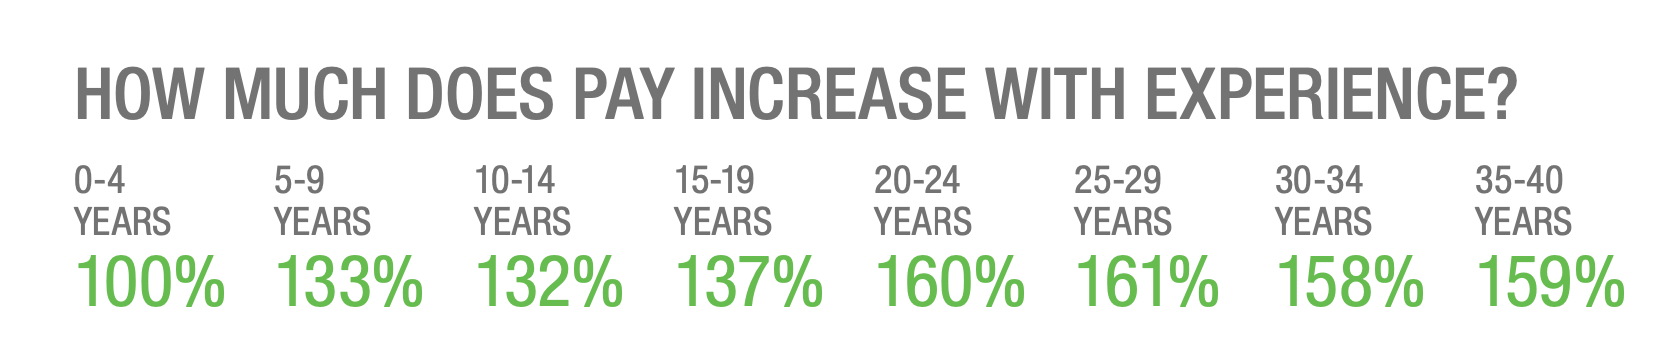 How Much Pay Increases with Experience, Where It's Relatively Flat Until It Peaks at 20 Years